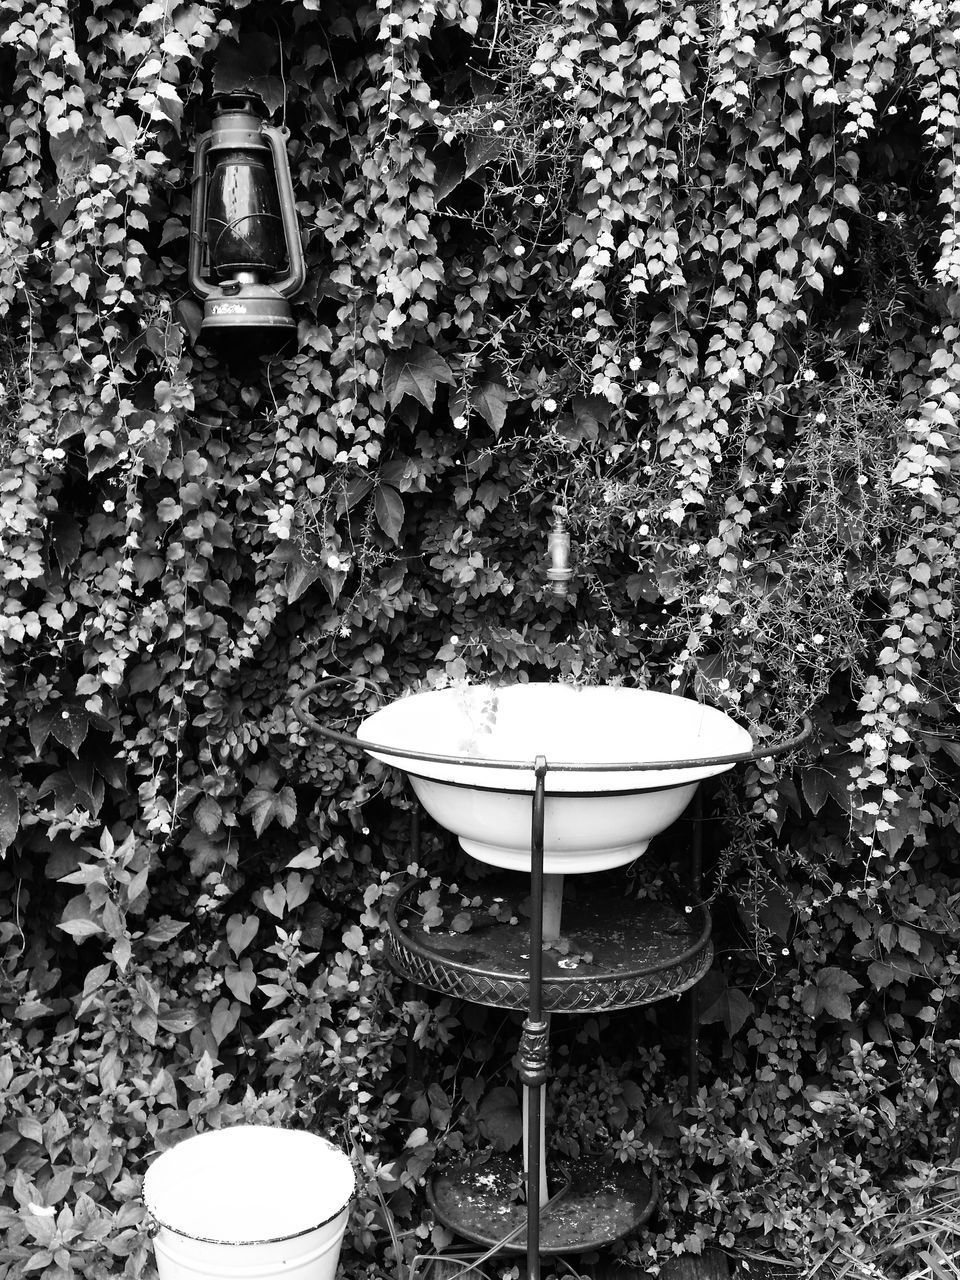 plant, no people, nature, day, growth, front or back yard, outdoors, wall - building feature, lighting equipment, absence, leaf, seat, hanging, toilet, plant part, old, technology, bathroom, high angle view, land